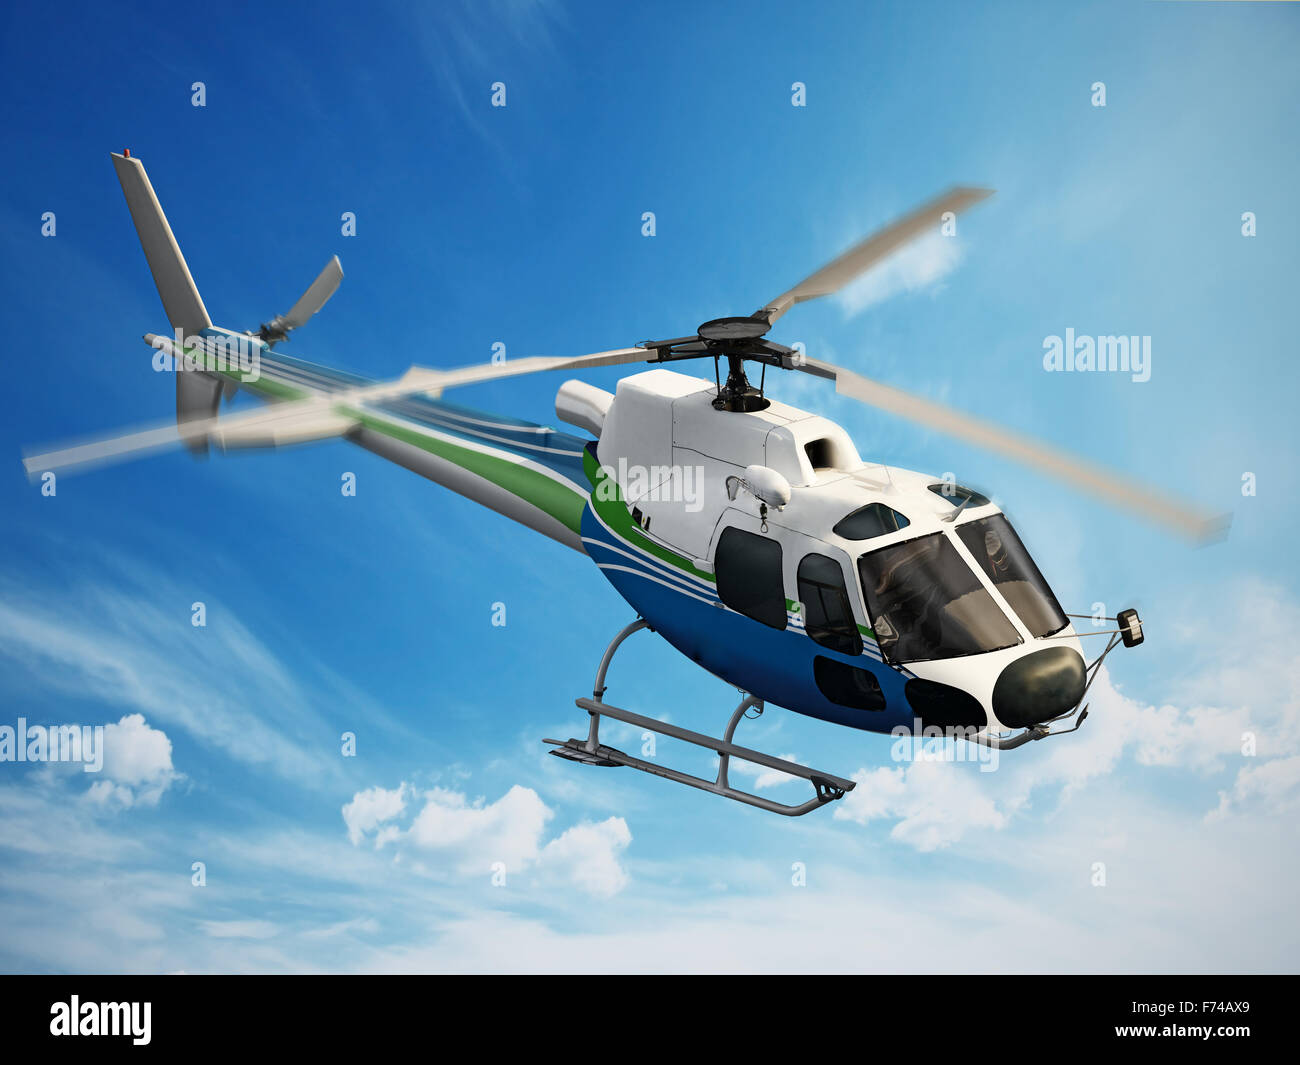 Helicopter flying through the sky - Stock Image